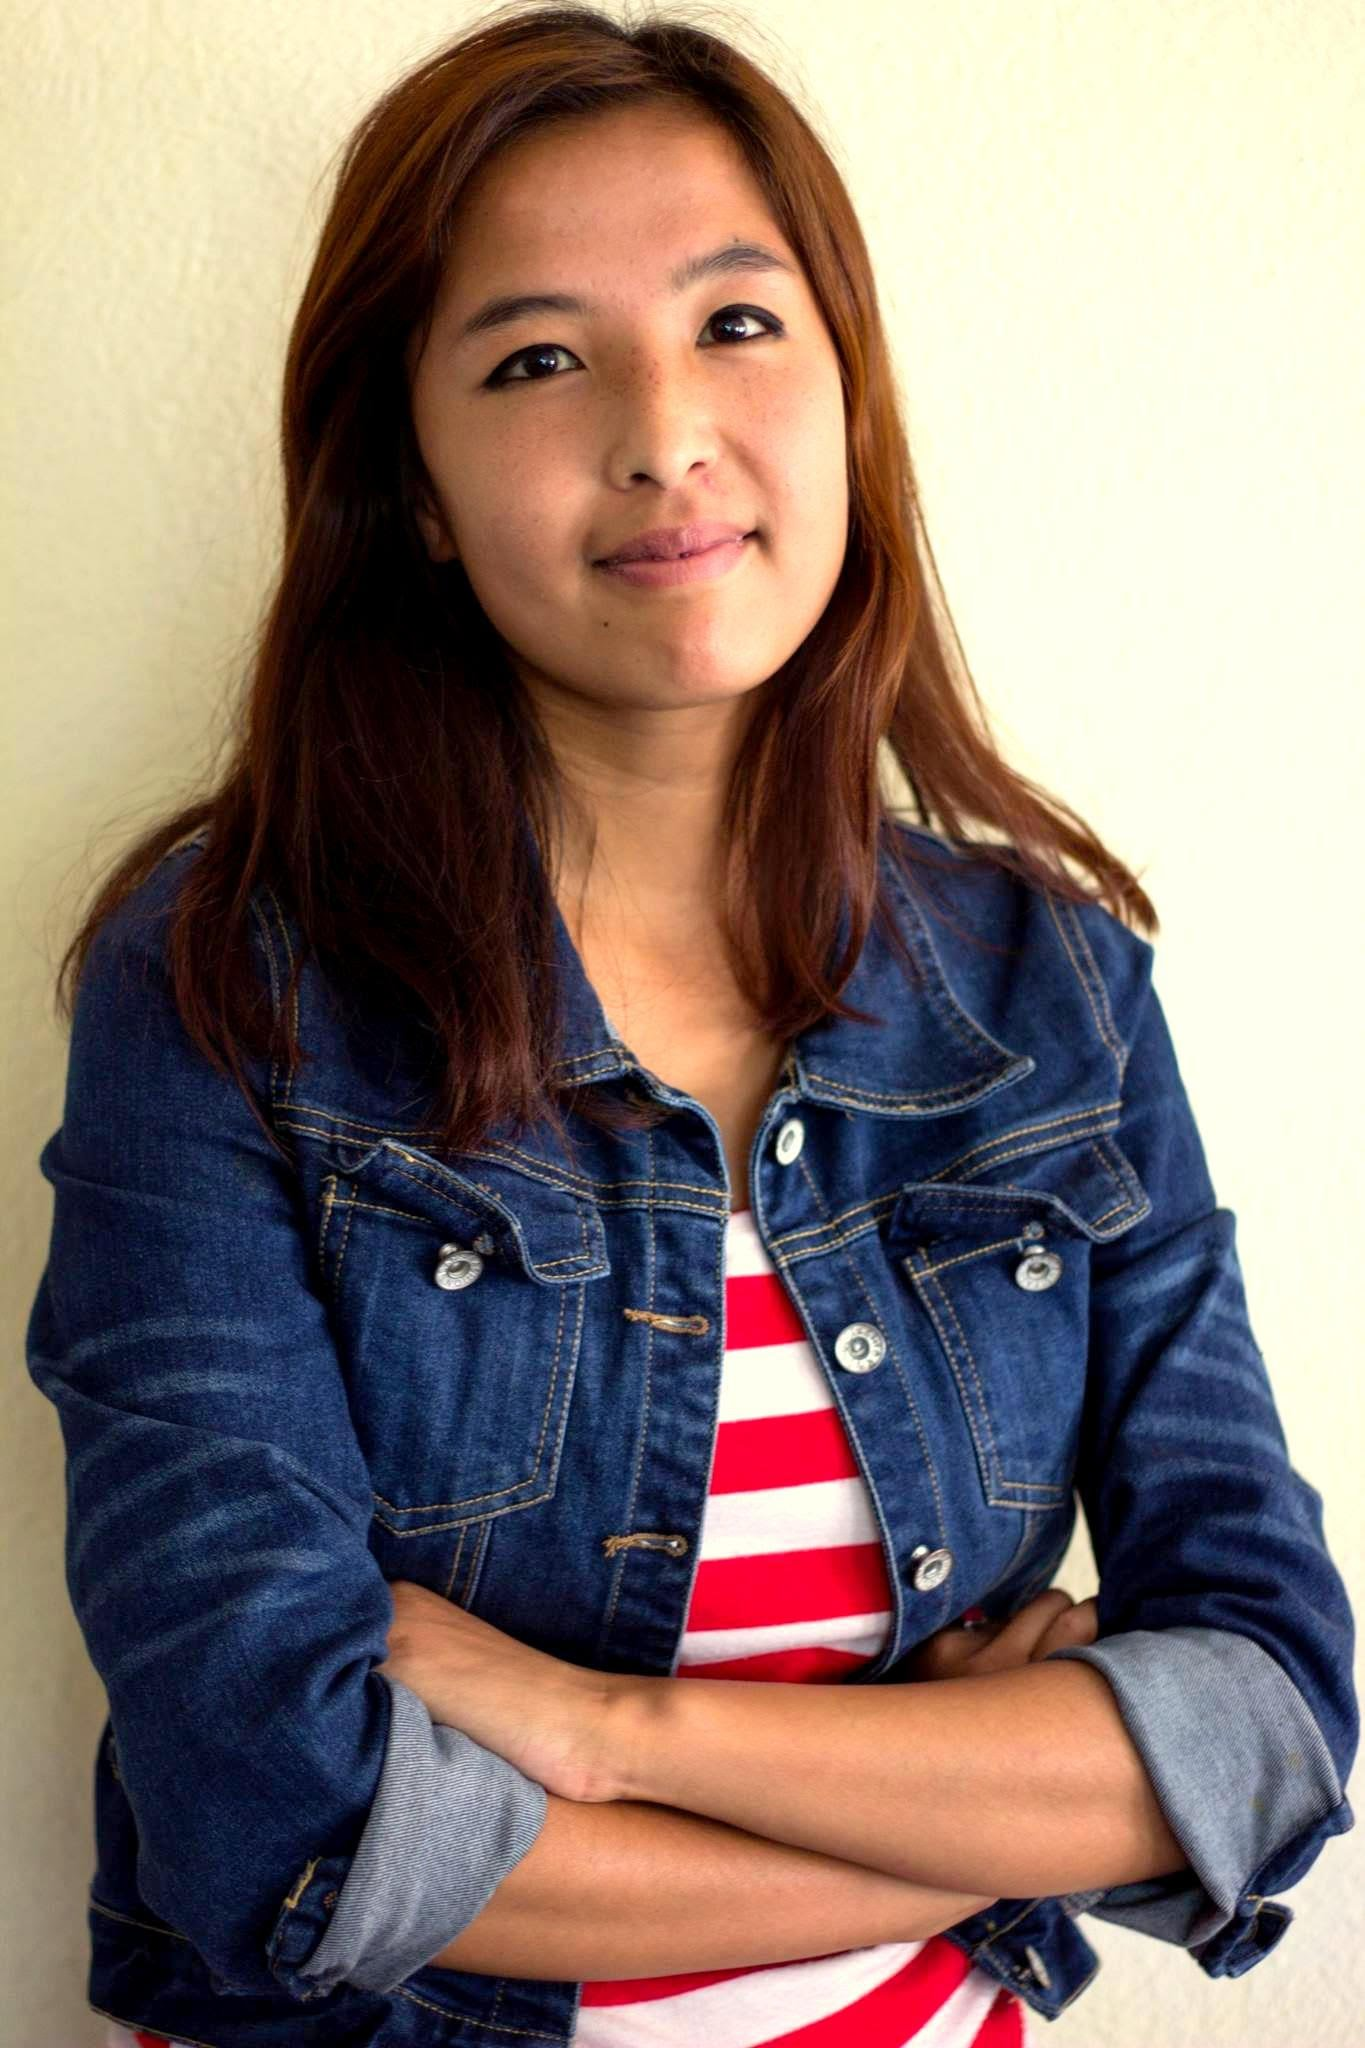 Interview rojina bajracharya girls in technology nepal the mary sue earlier this month i got the chance to talk to girls in technology co founder rojina bajracharya who was visiting new york as the winner of toptals ccuart Images